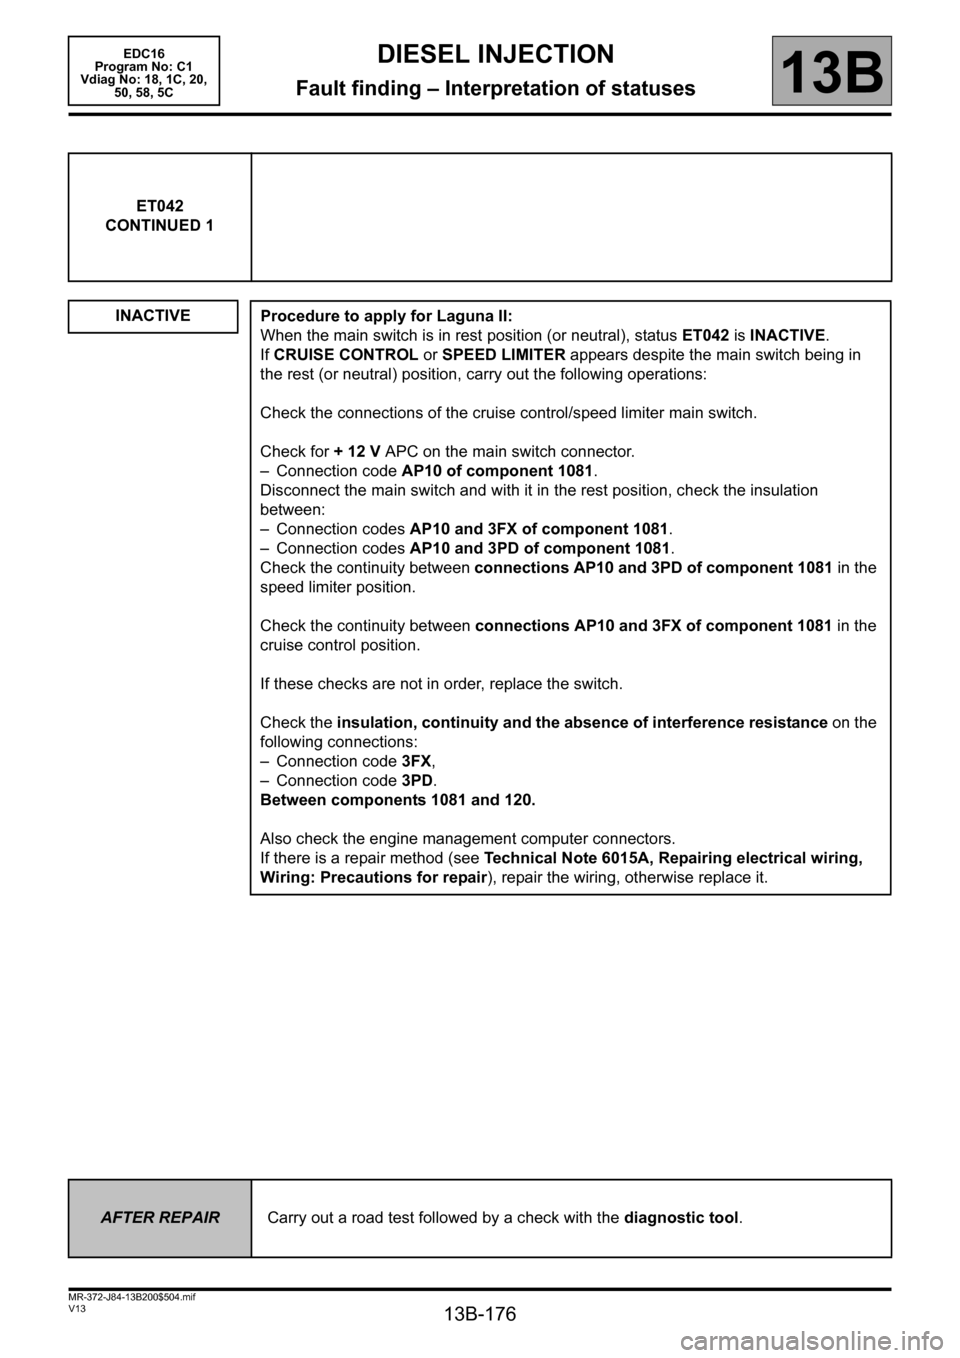 RENAULT SCENIC 2011 J95 / 3.G Engine And Peripherals EDC16 Workshop Manual, Page 176